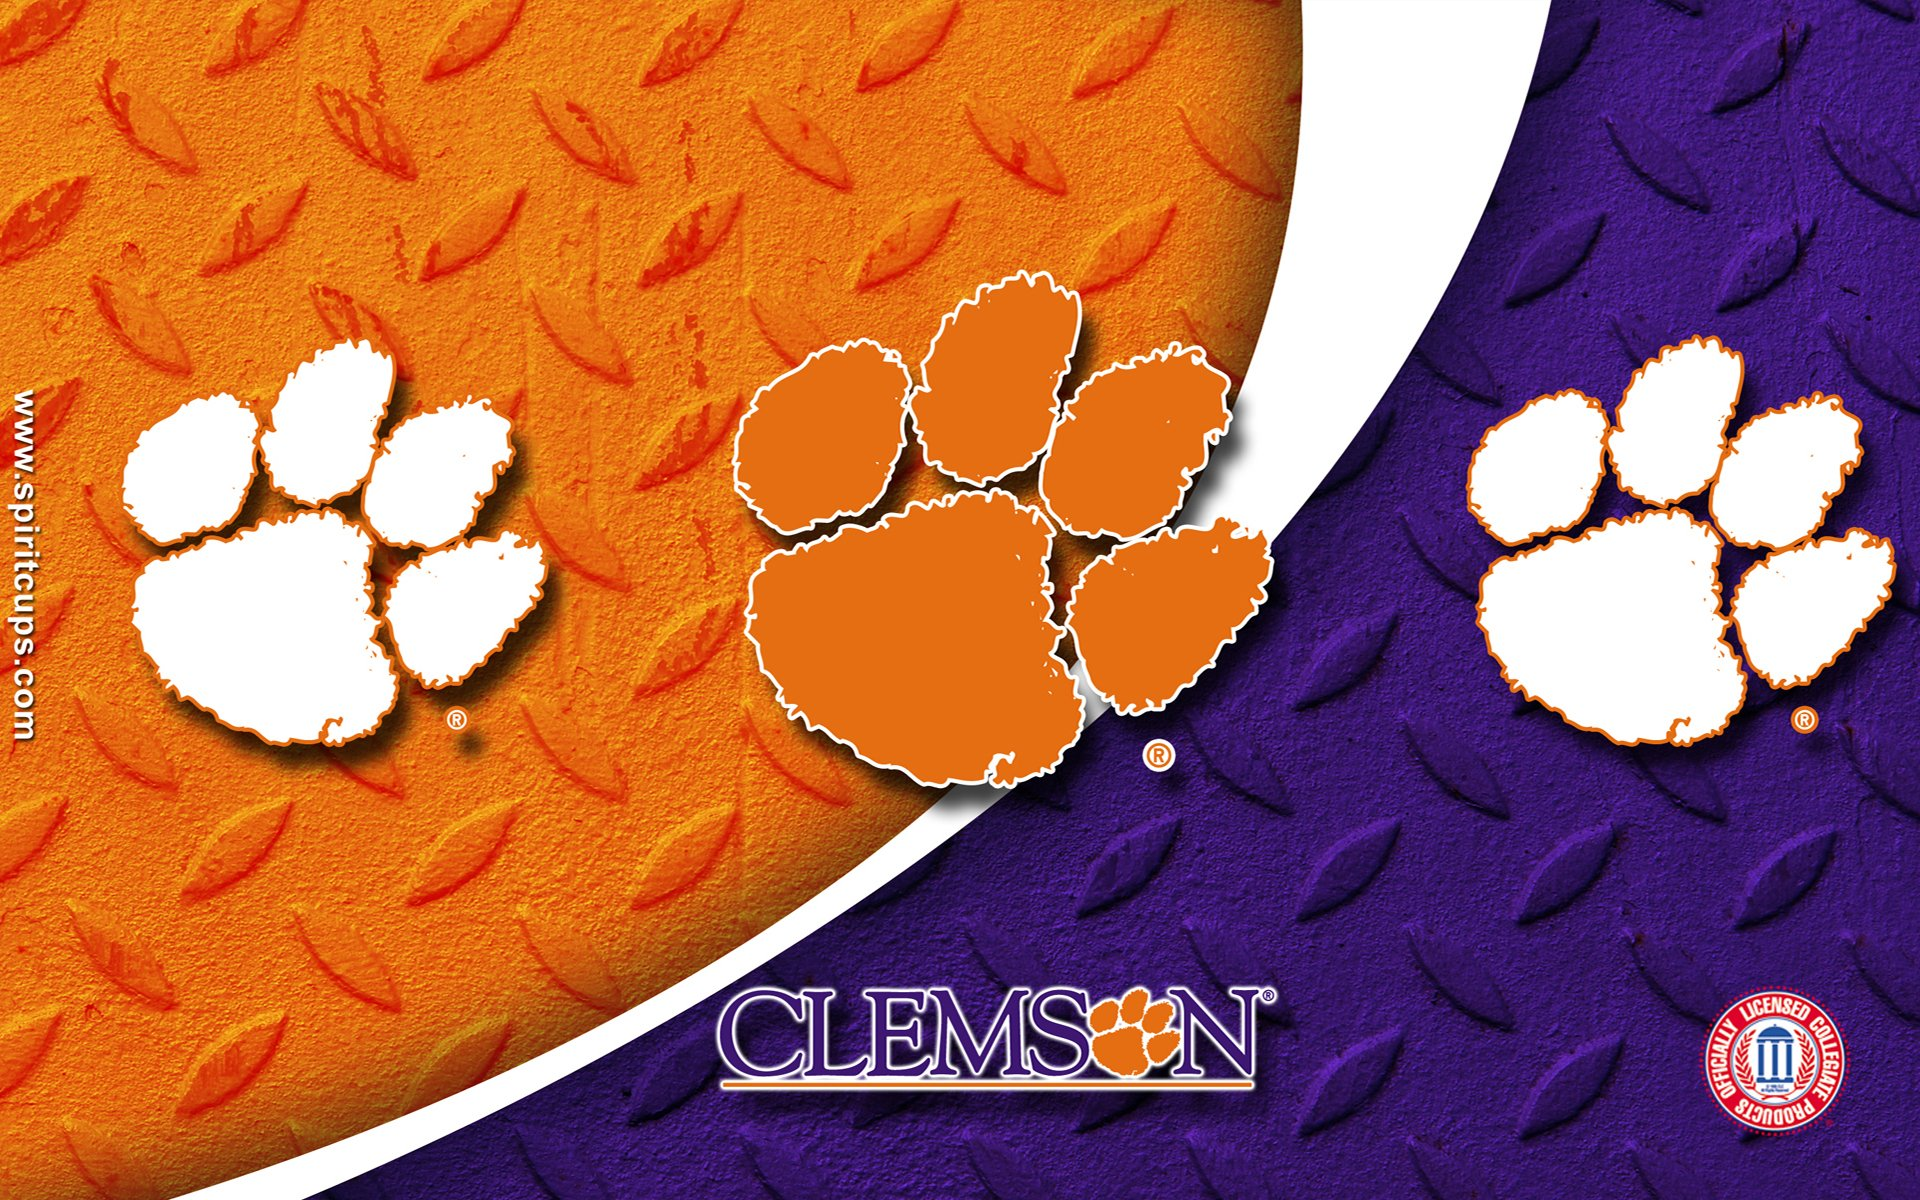 CLEMSON TIGERS college football wallpaper 1920x1200 593971 1920x1200